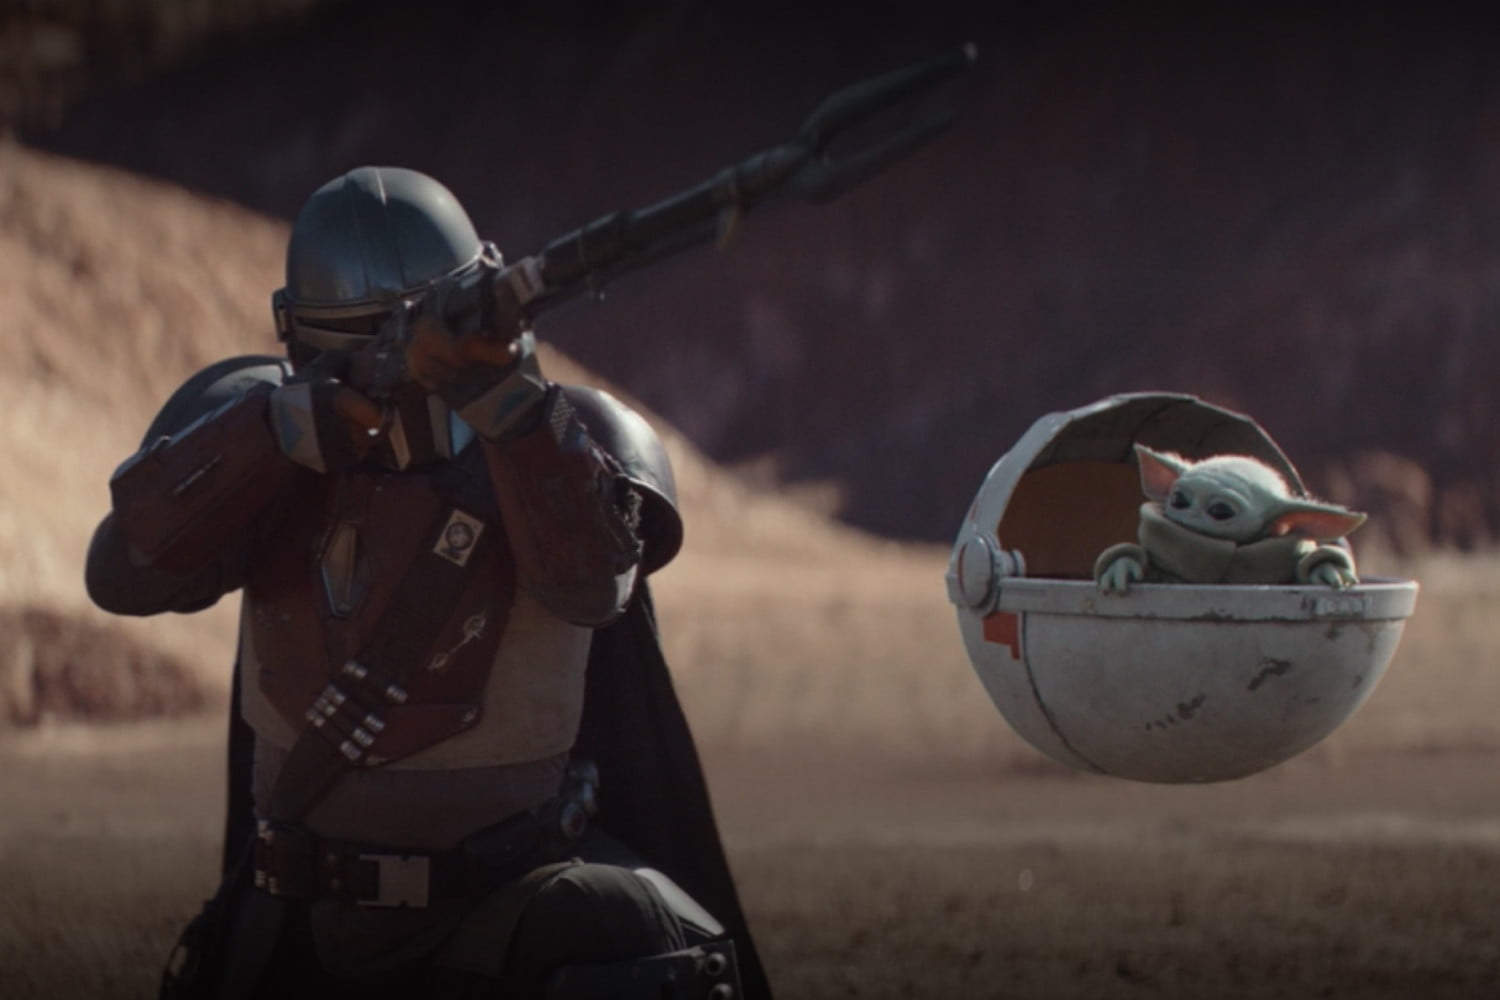 The Mandalorian Season 2 Trailer, Release Date, Cast, Plot Theory Baby Yoda will be back in Disney Plus Sequel